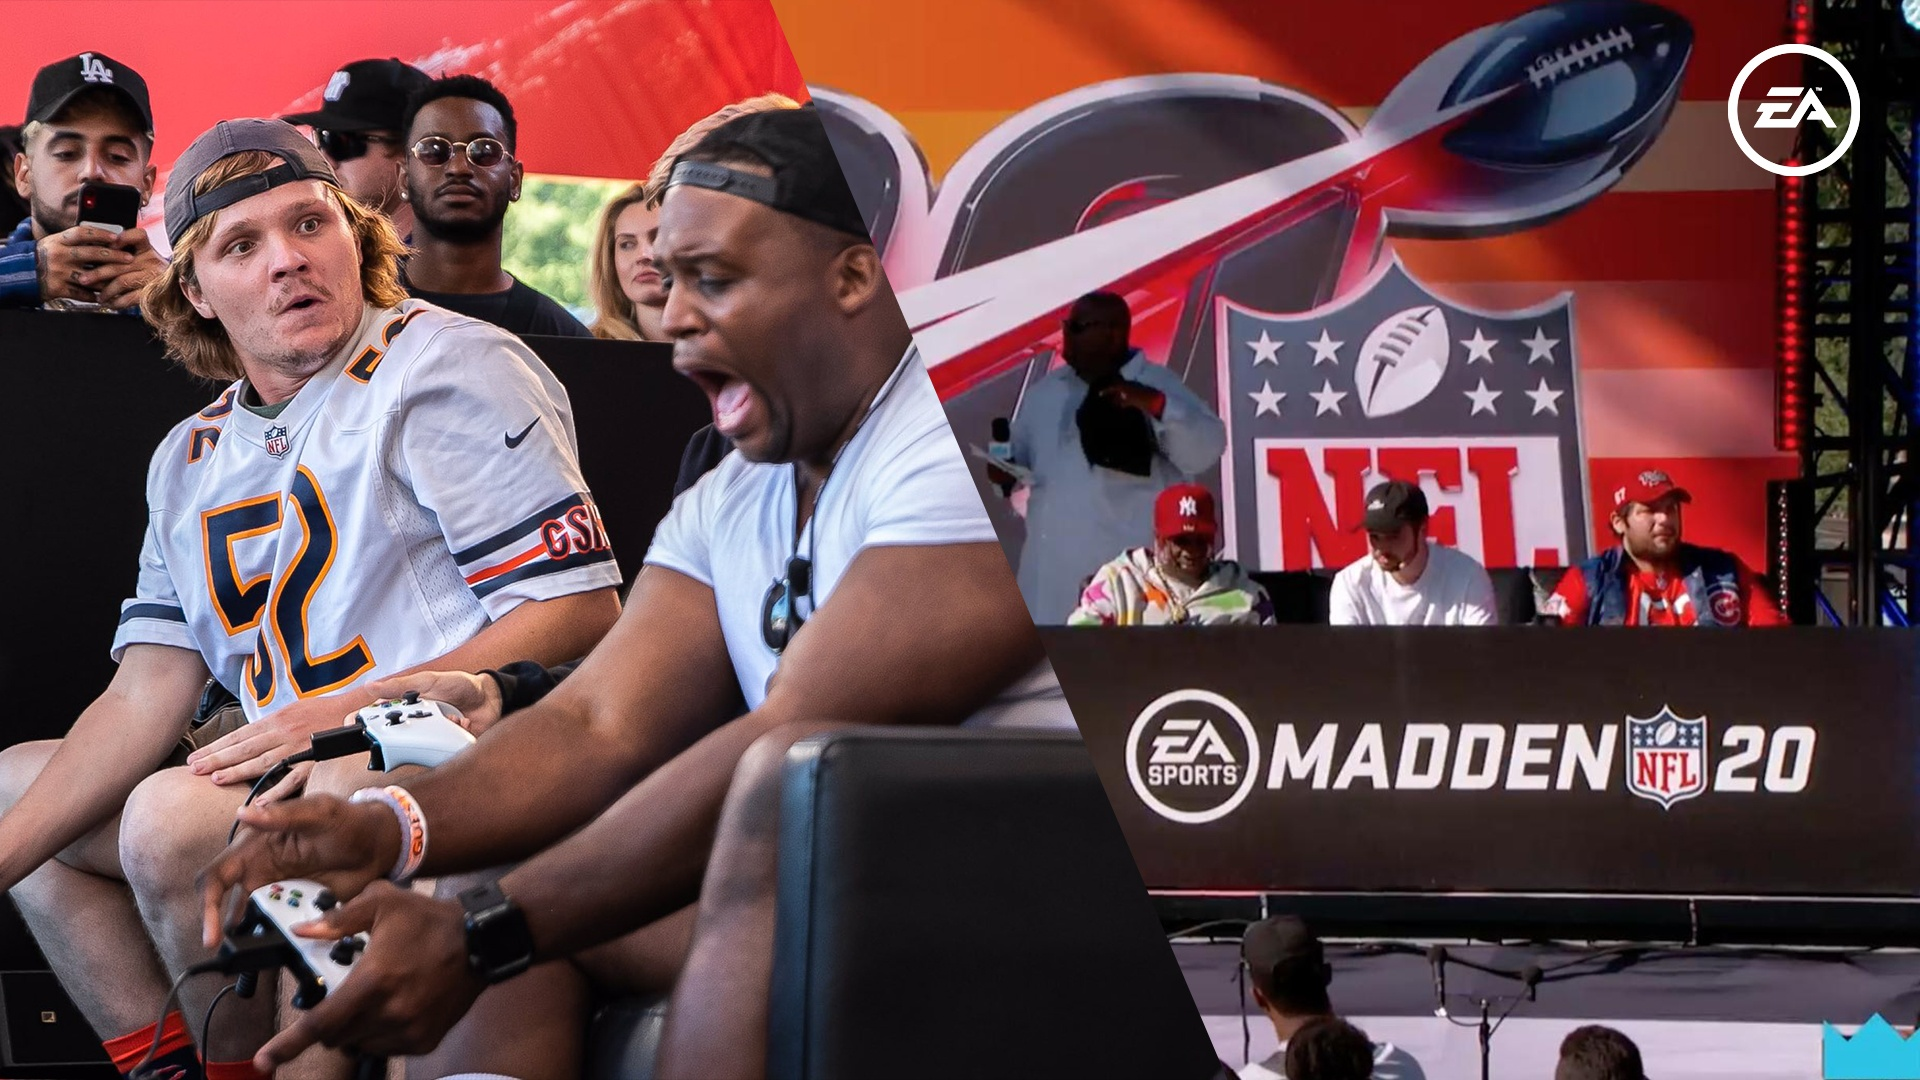 Thumbnail for EA Sports Madden NFL 20